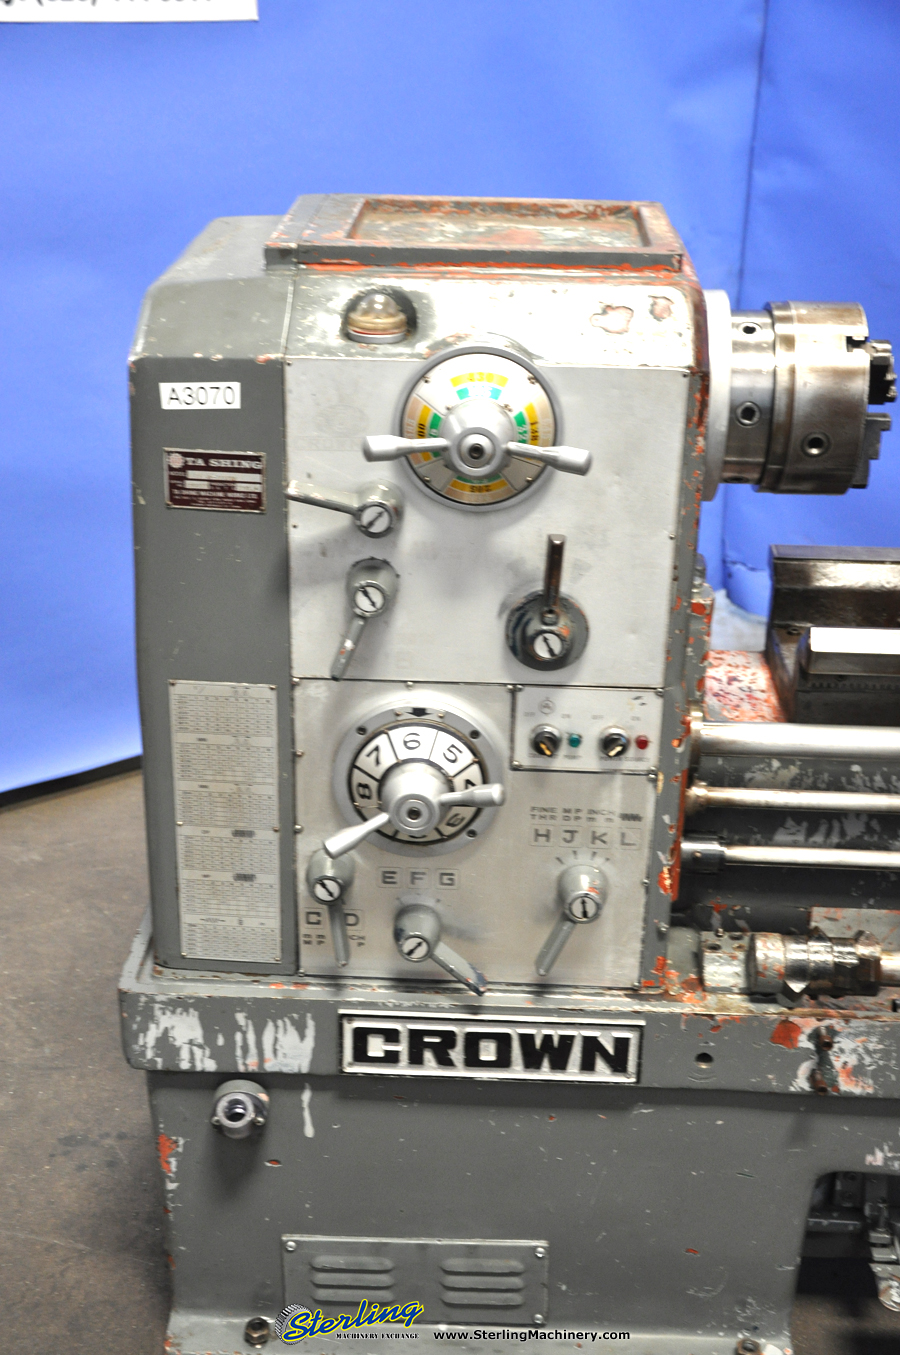 ta shing crown removable gap bed engine lathe engine lathes sterling machinery